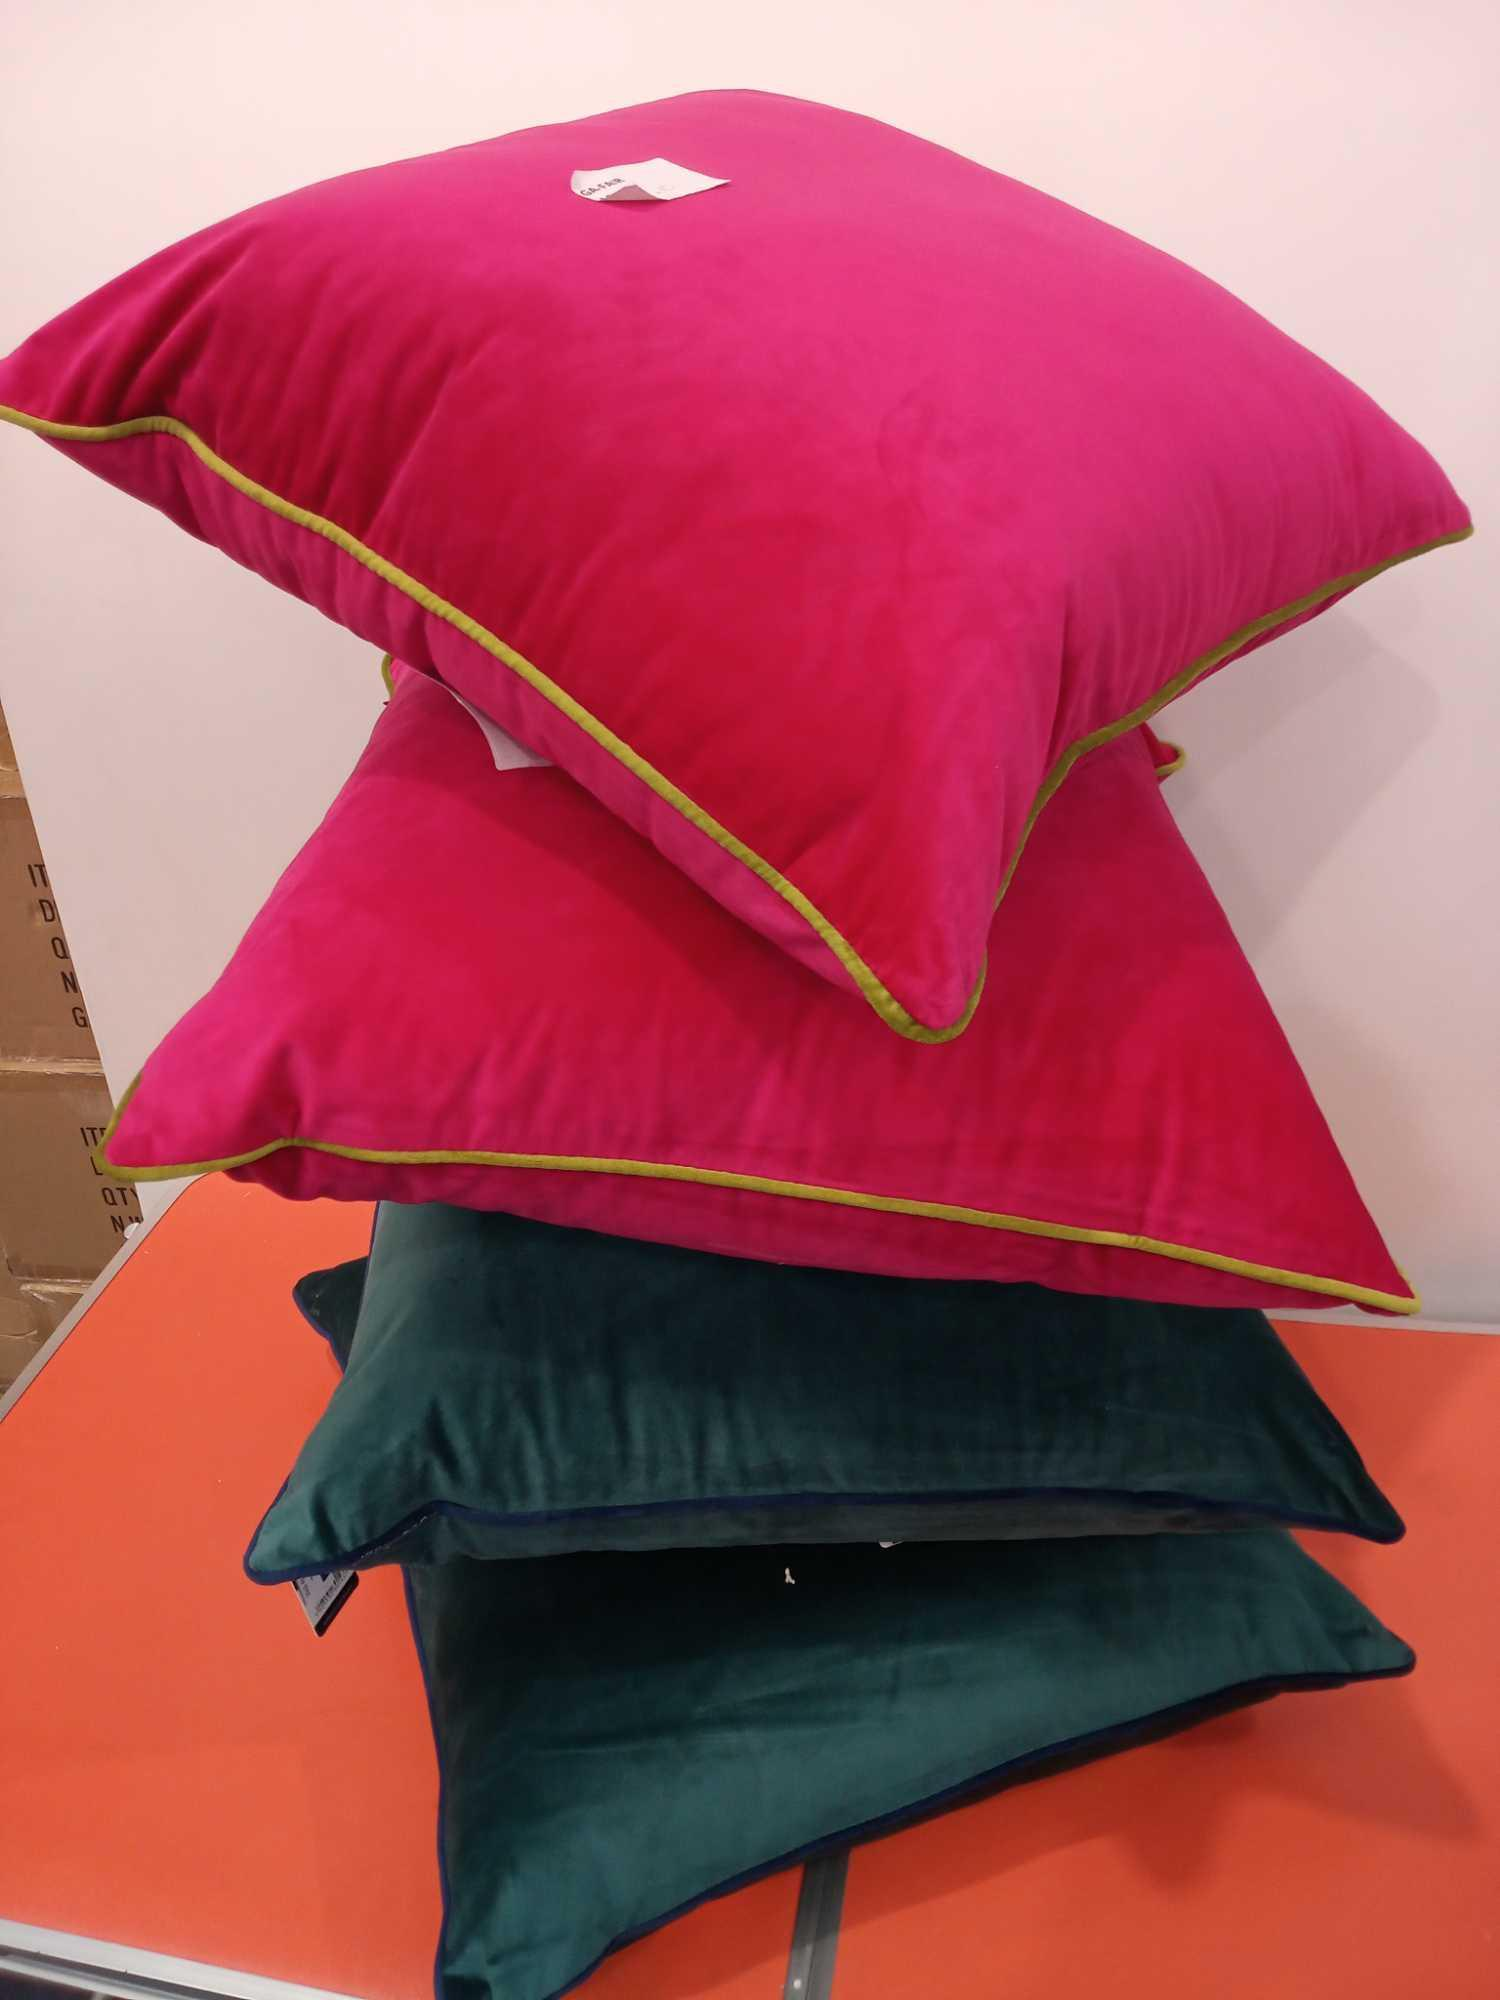 Rrp £30 Each Assorted Paoletti Velvet Cushions 2 In Dark Green With Blue Piping And 2 In Pink With G